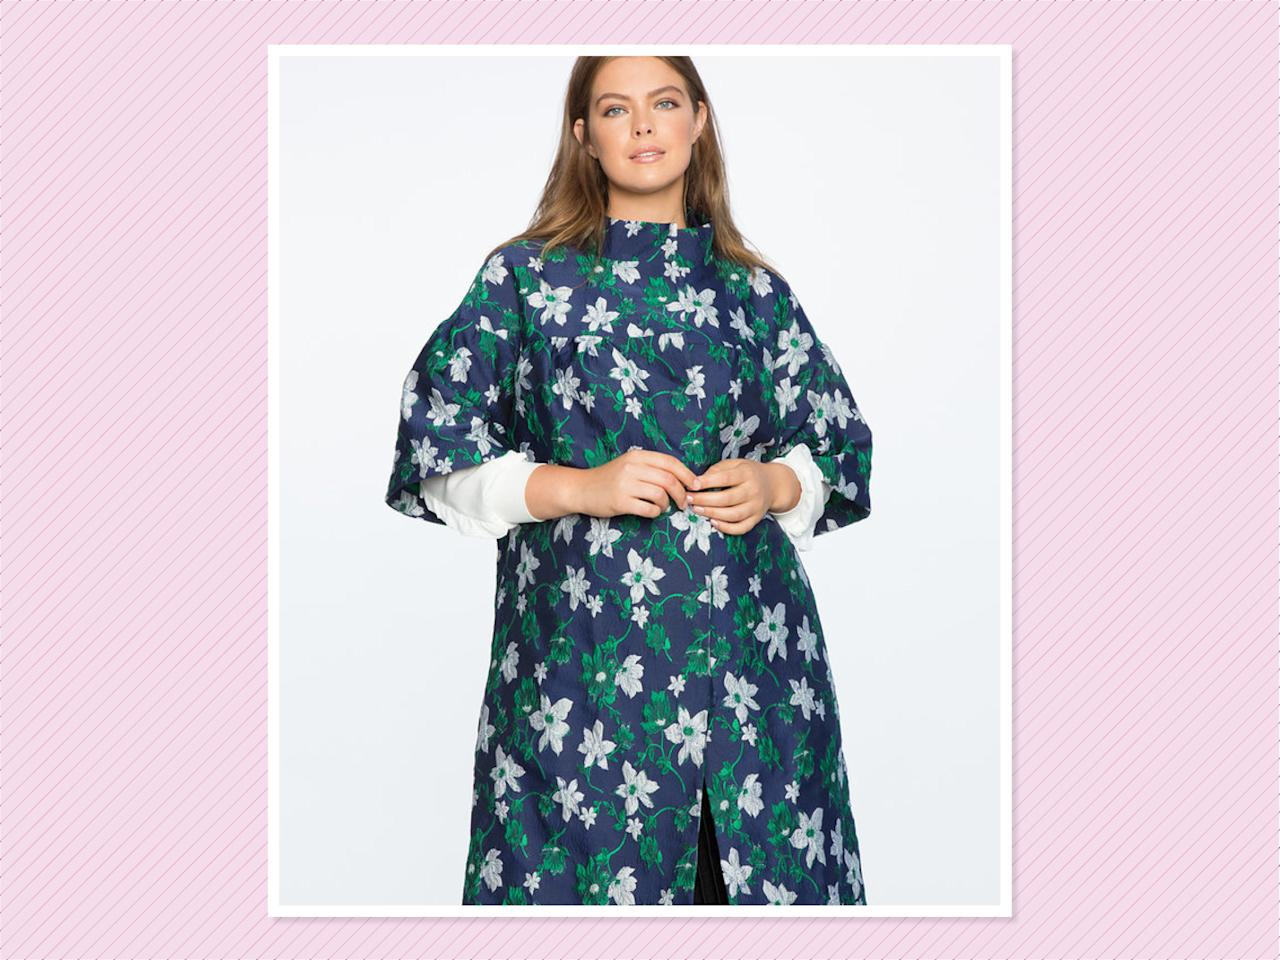 "<p>Flare Sleeve Jacquard coat, $160, <a rel=""nofollow"" href=""http://www.eloquii.com/flare-sleeve-jacquard-coat/1255073.html?cgid=outerwear&start=4&dwvar_1255073_colorCode=16"">Eloquii</a> (Photo: Eloquii) </p>"